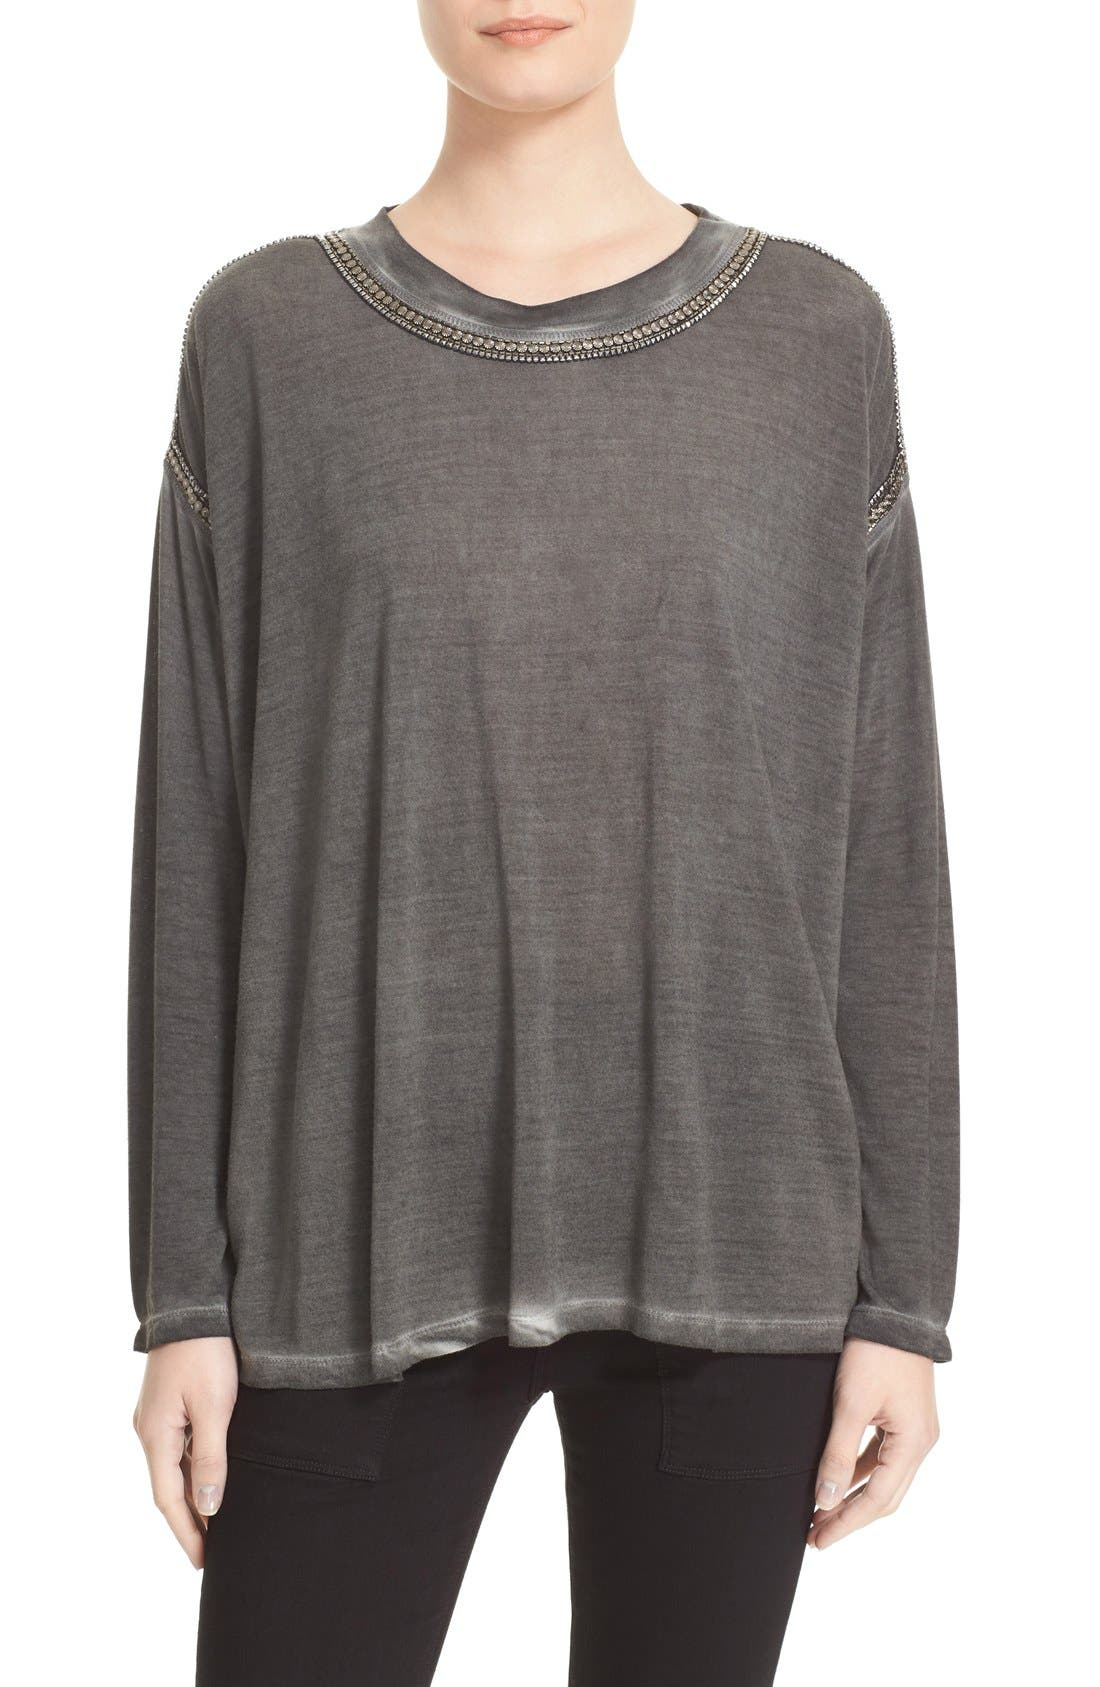 THE KOOPLES Chain Trim Jersey Top